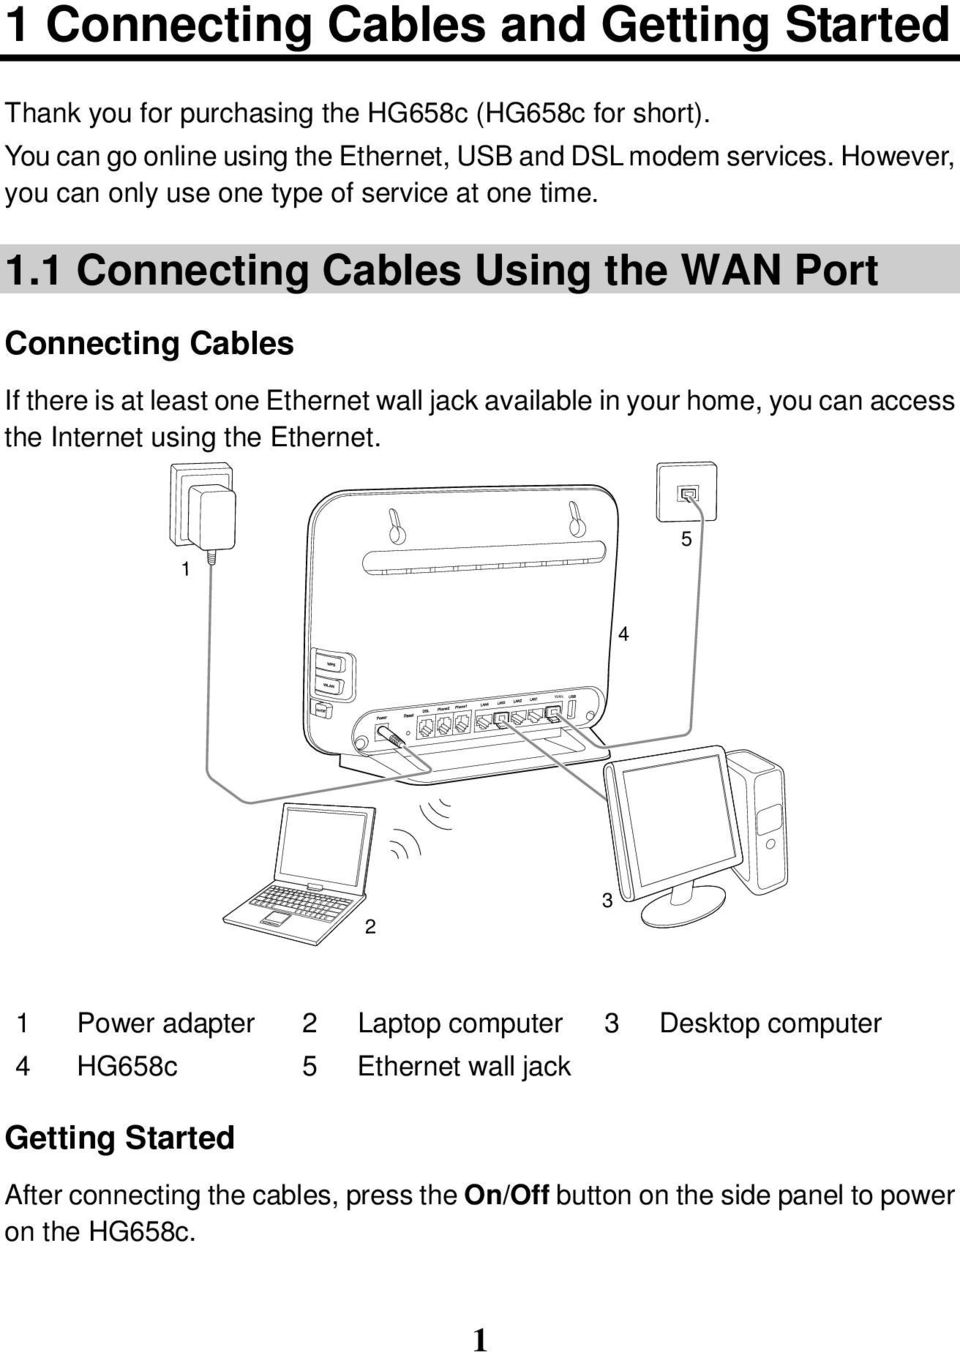 1 Connecting Cables Using the WAN Port Connecting Cables If there is at least one Ethernet wall jack available in your home, you can access the